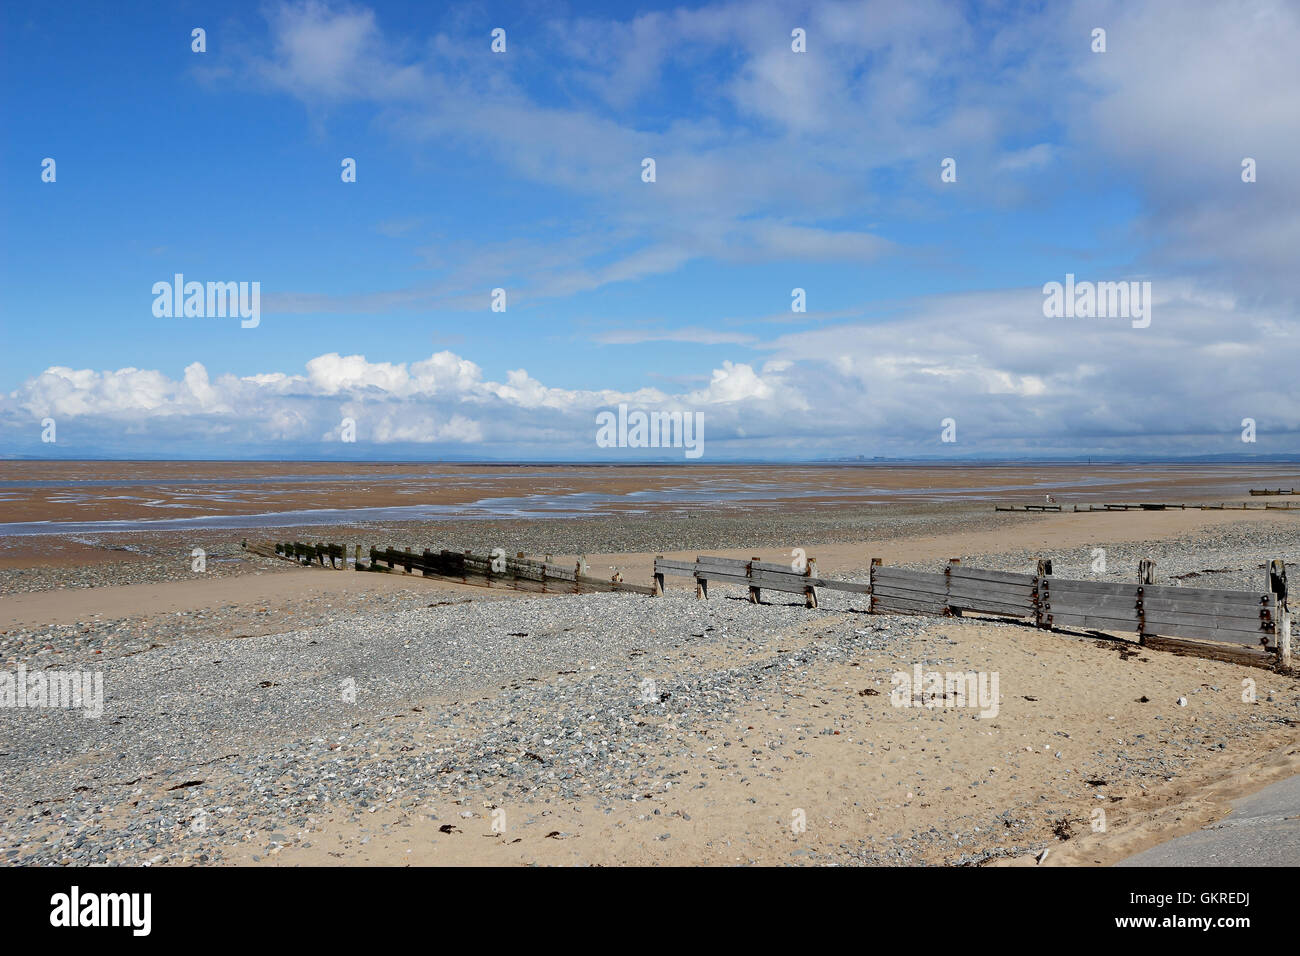 Morecambe Bay Beach Stock Photos and Images